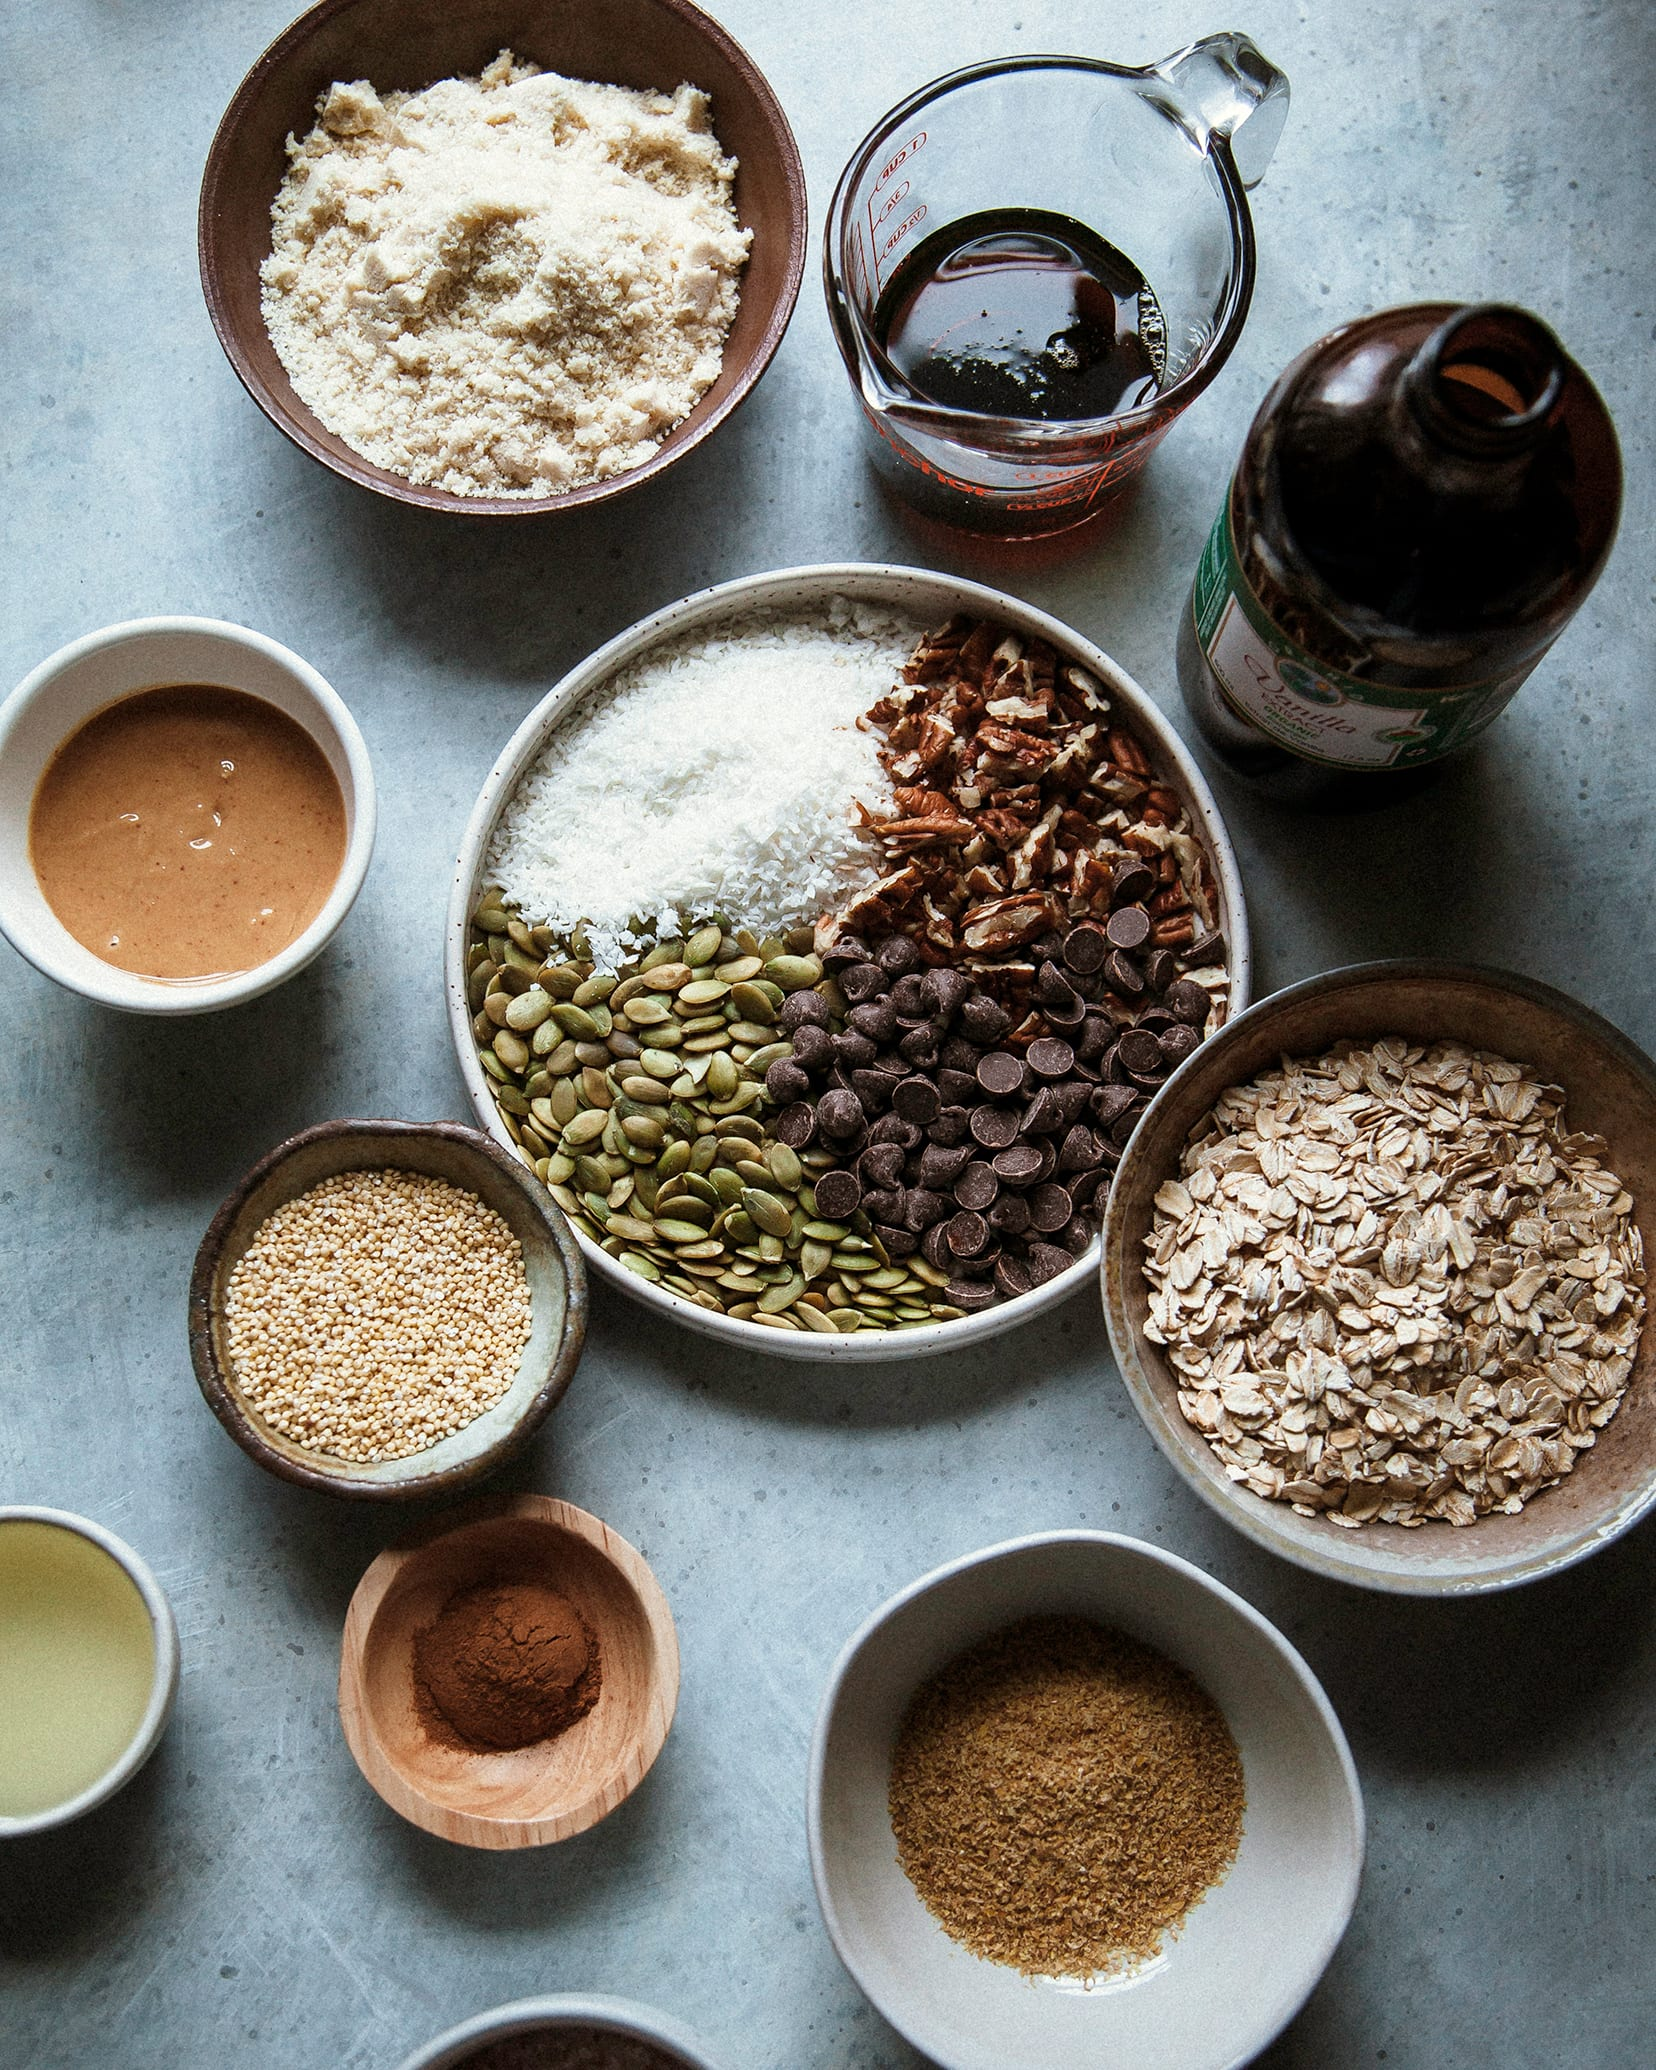 An overhead shot of ingredients and prep for a baking project.